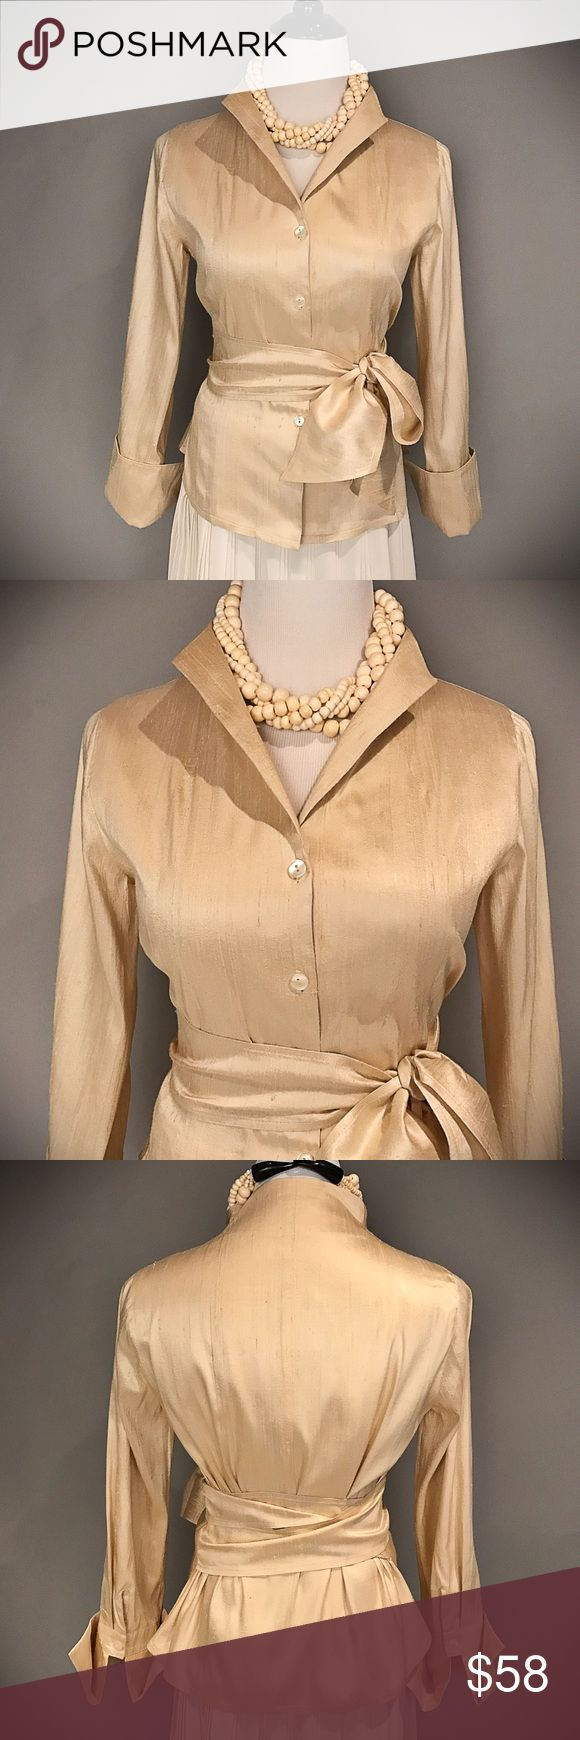 """Silk Dupioni Anni Kuan Blouse Stunning butter cream tone Blouse by designer Anni Kuan.  """"Anni's design sensibilities have earned her a devoted following amongst women with a distinct sense of accomplishment, and includes celebrities like Laura Linney, Nicole Kidman, Joan Allen, and New York's first lady Chirlane McCray."""". This lovely Blouse has 3/4 French cuffs, a beautiful detailed neckline and an attached wide sash to wrap at the waistline.  Worn once and in pristine condition. Shoulder to…"""